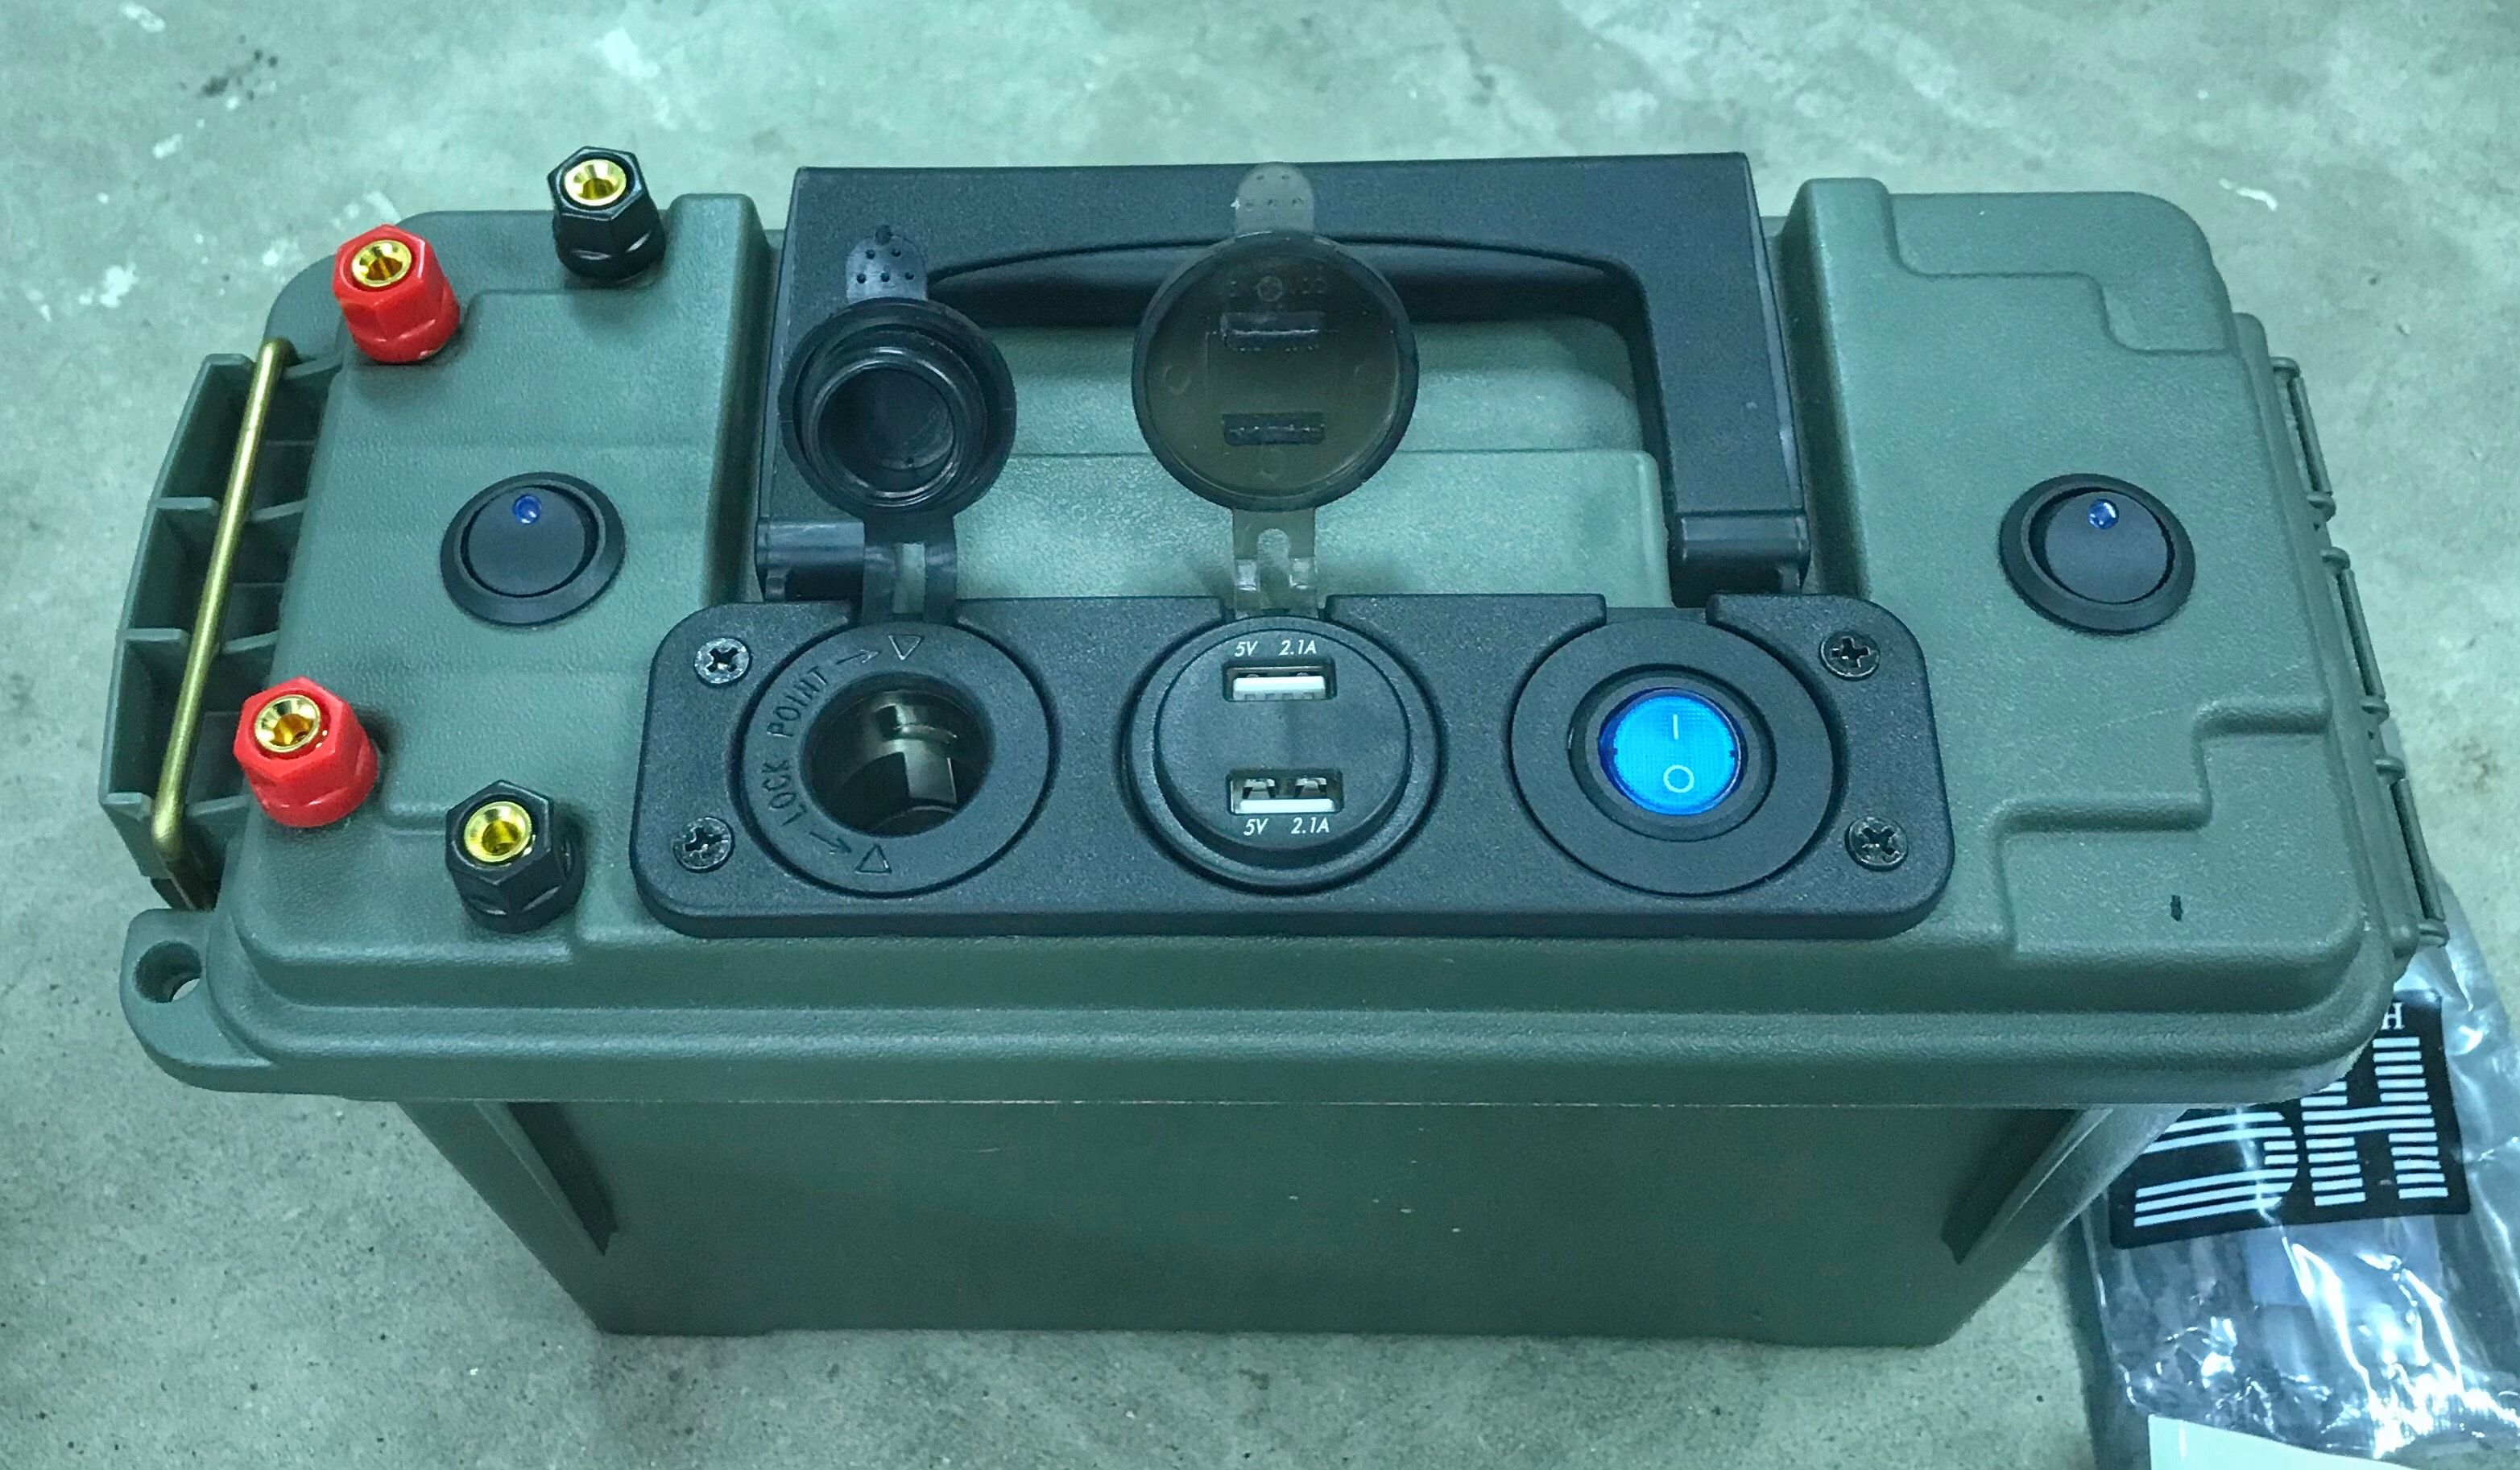 medium resolution of 12 volt battery box volt meter illuminates between usb plugs left switch controls posts right switch controls leds mounted on side